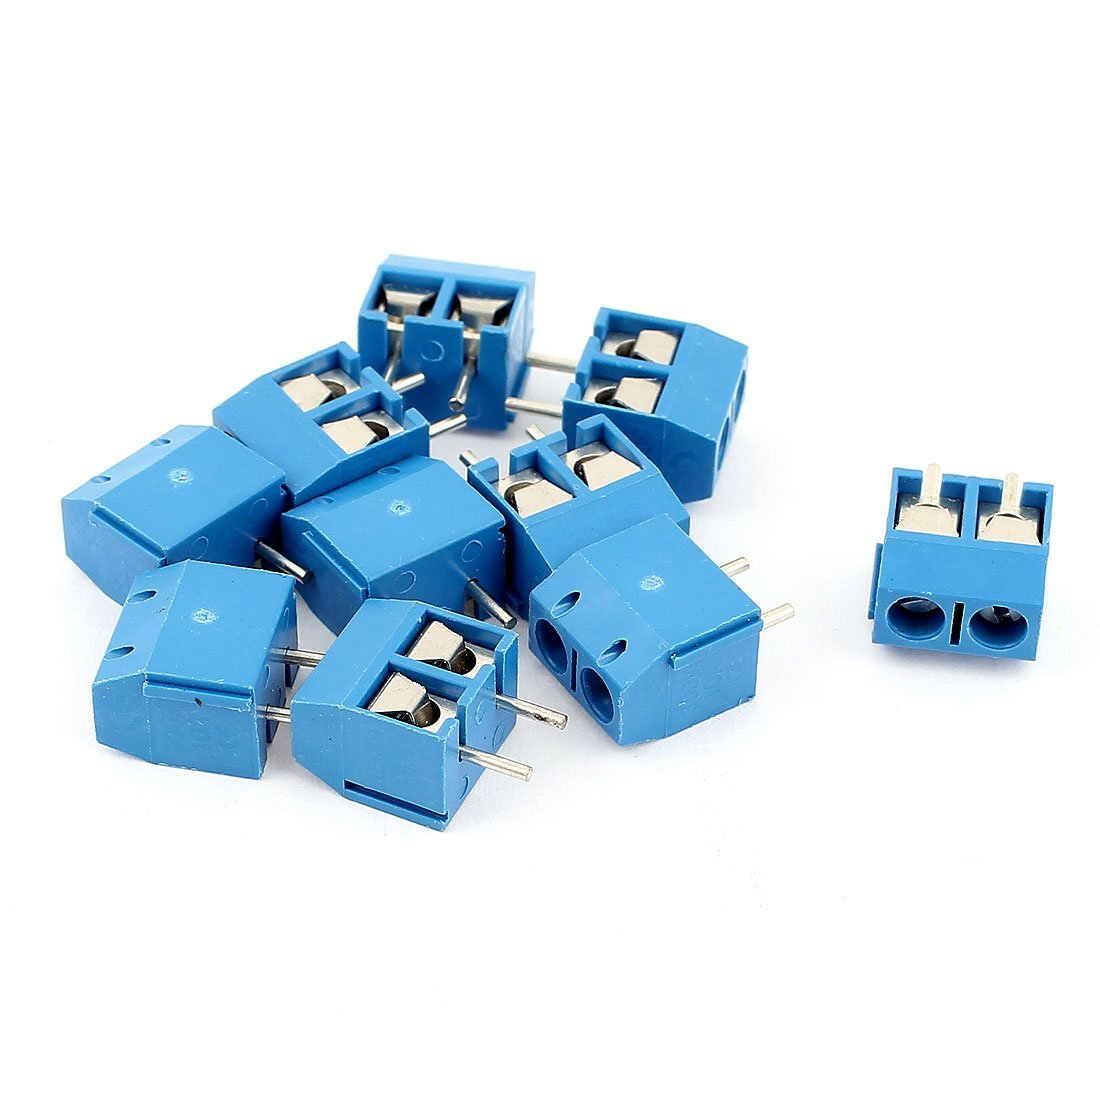 uxcell 10 Pcs 2 Way AC 300V 10A PCB Terminal Block Connector 5.0mm Pitch Blue